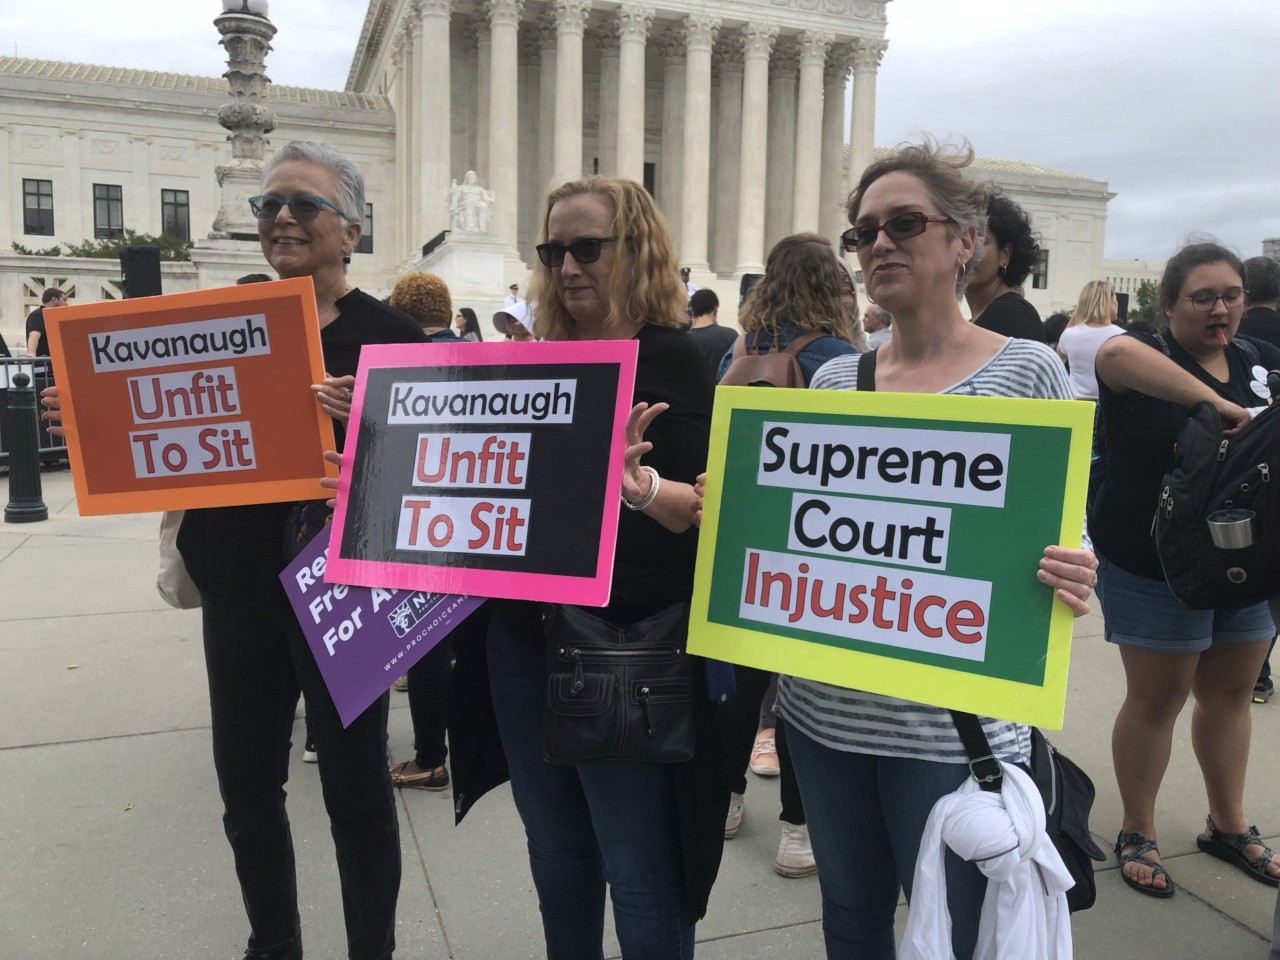 Gorsuch emerges as possible LGBT ally in Supreme Court arguments